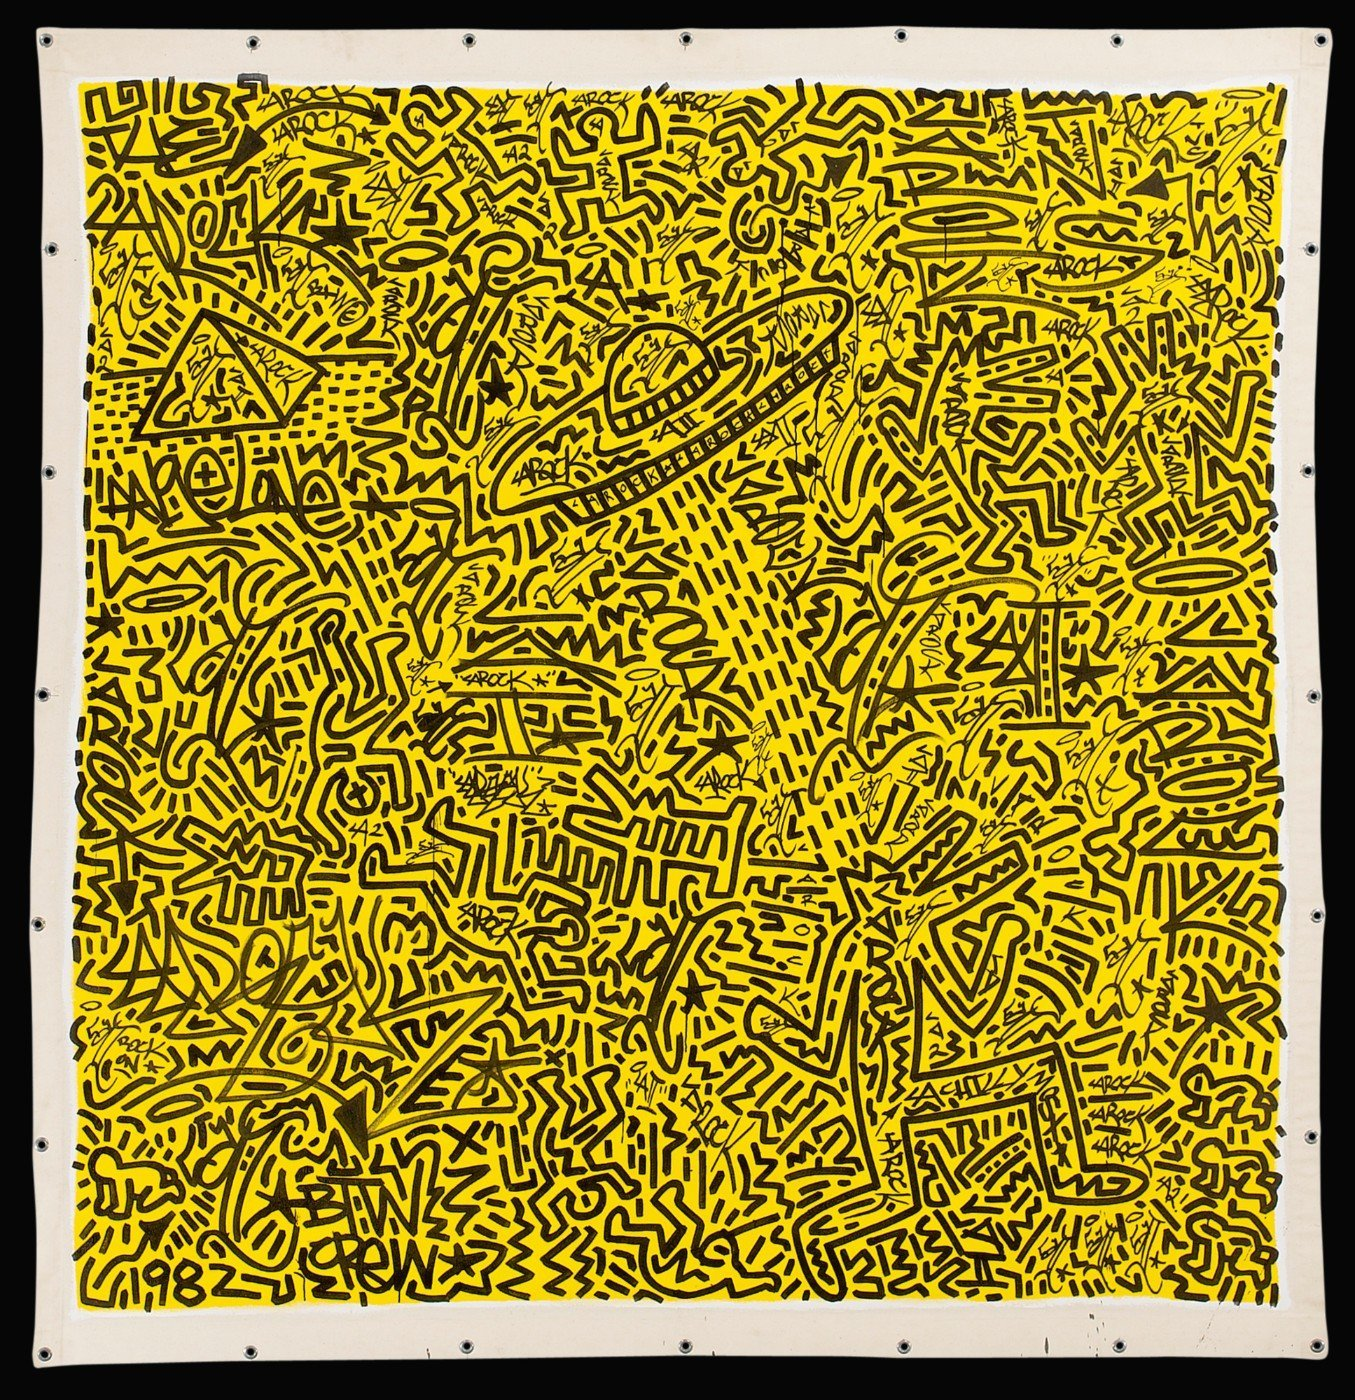 Untitled - Framed Prints by Keith Haring | Buy Posters, Frames ...